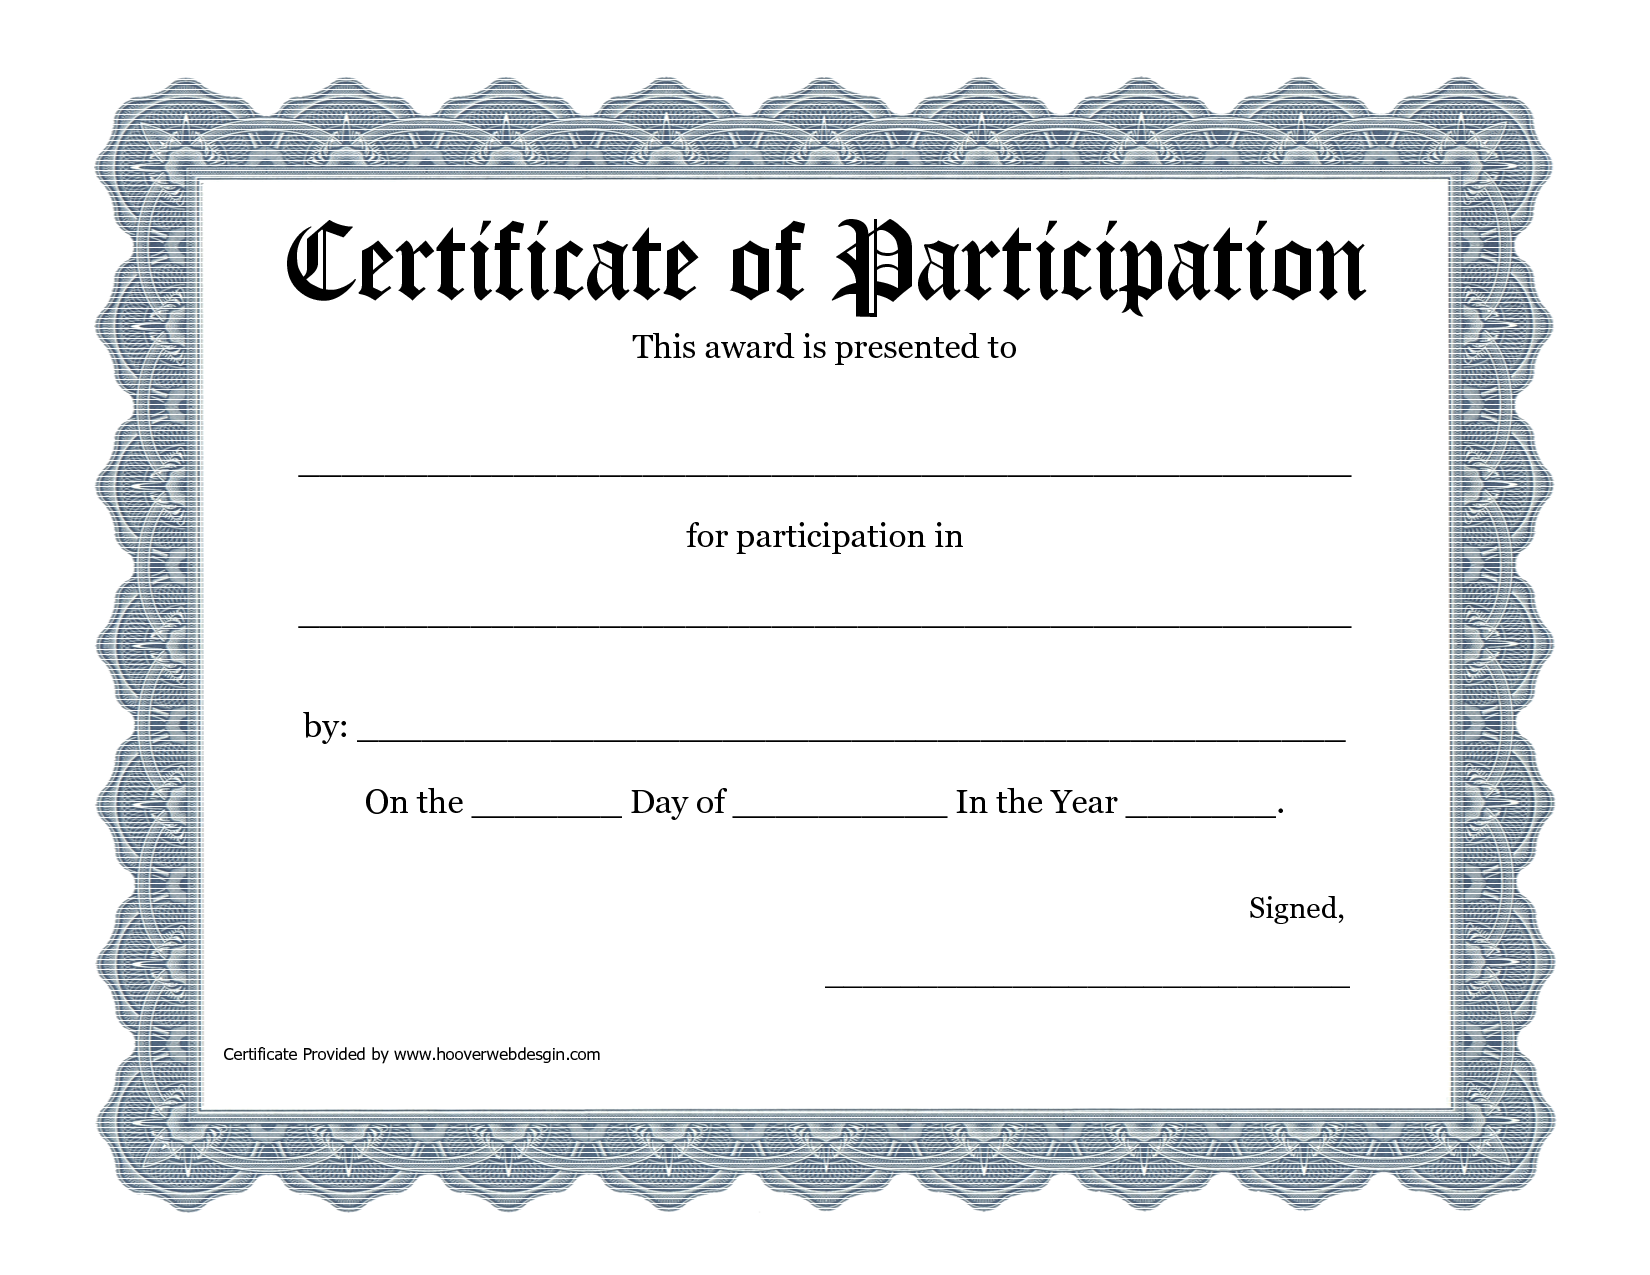 Free Printable Award Certificate Template Bing Images Certificate Of Participation Template Awards Certificates Template Certificate Of Recognition Template